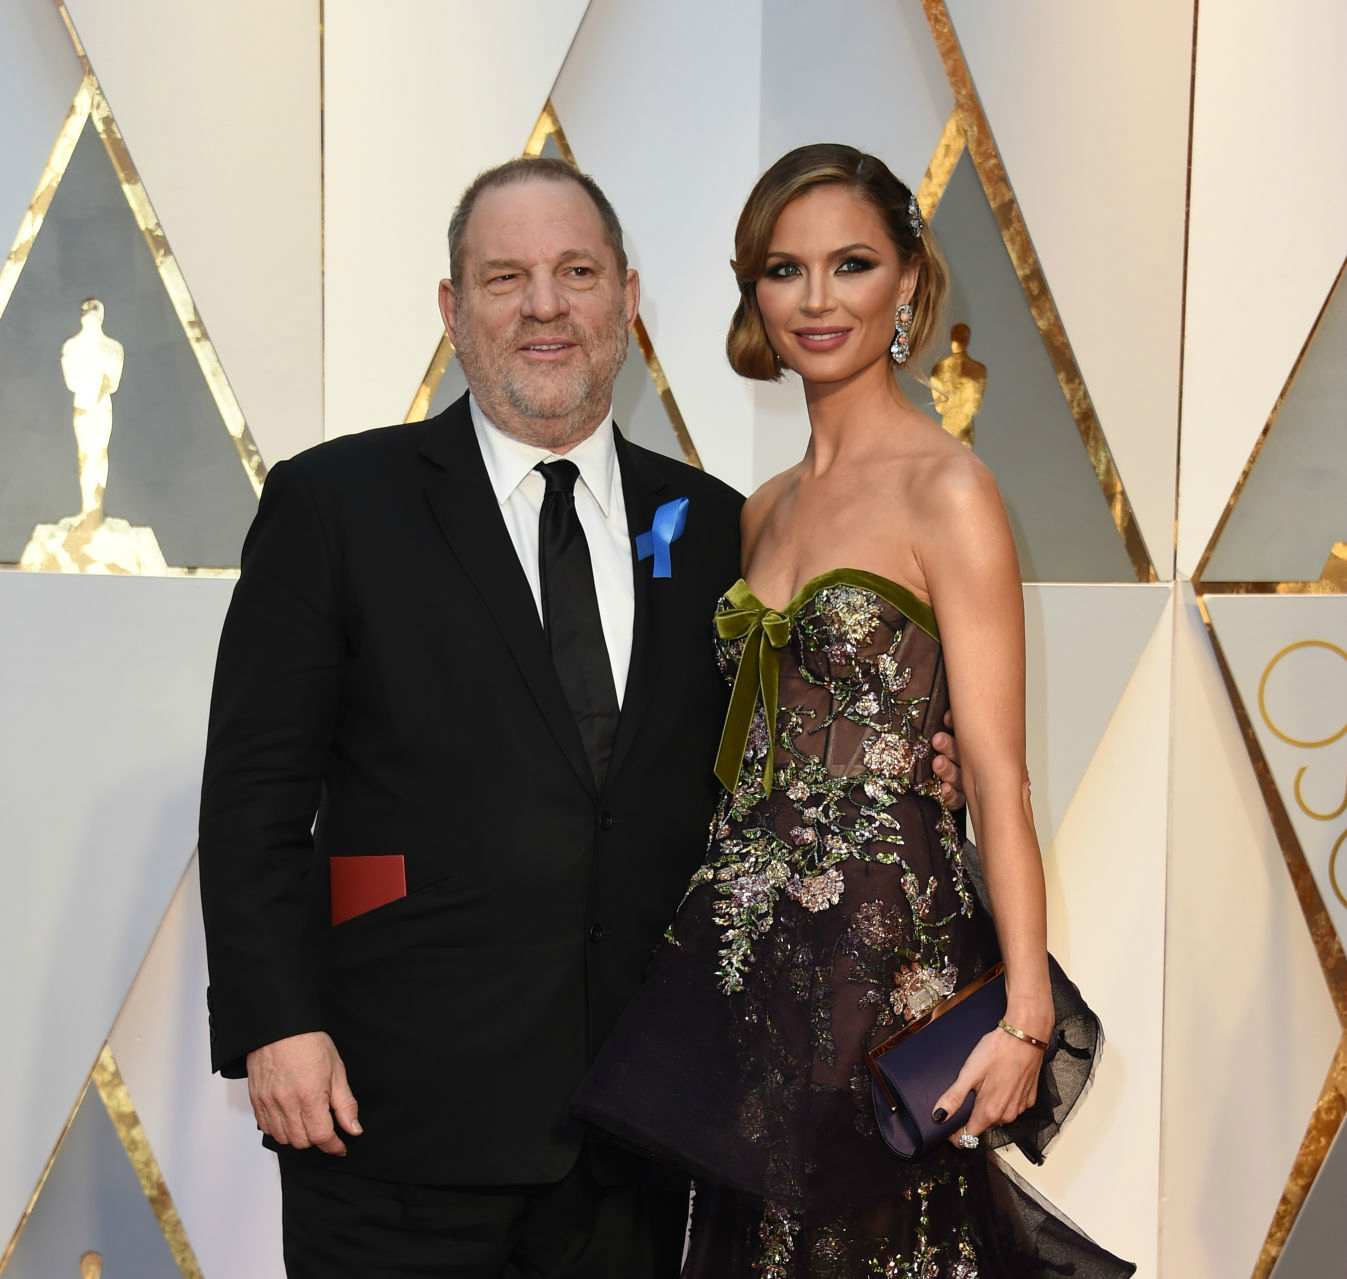 US producer Harvey Weinstein (L) and his wife US designer Georgina Chapman arrive on the red carpet for the 89th Oscars on February 26, 2017 in Hollywood, California